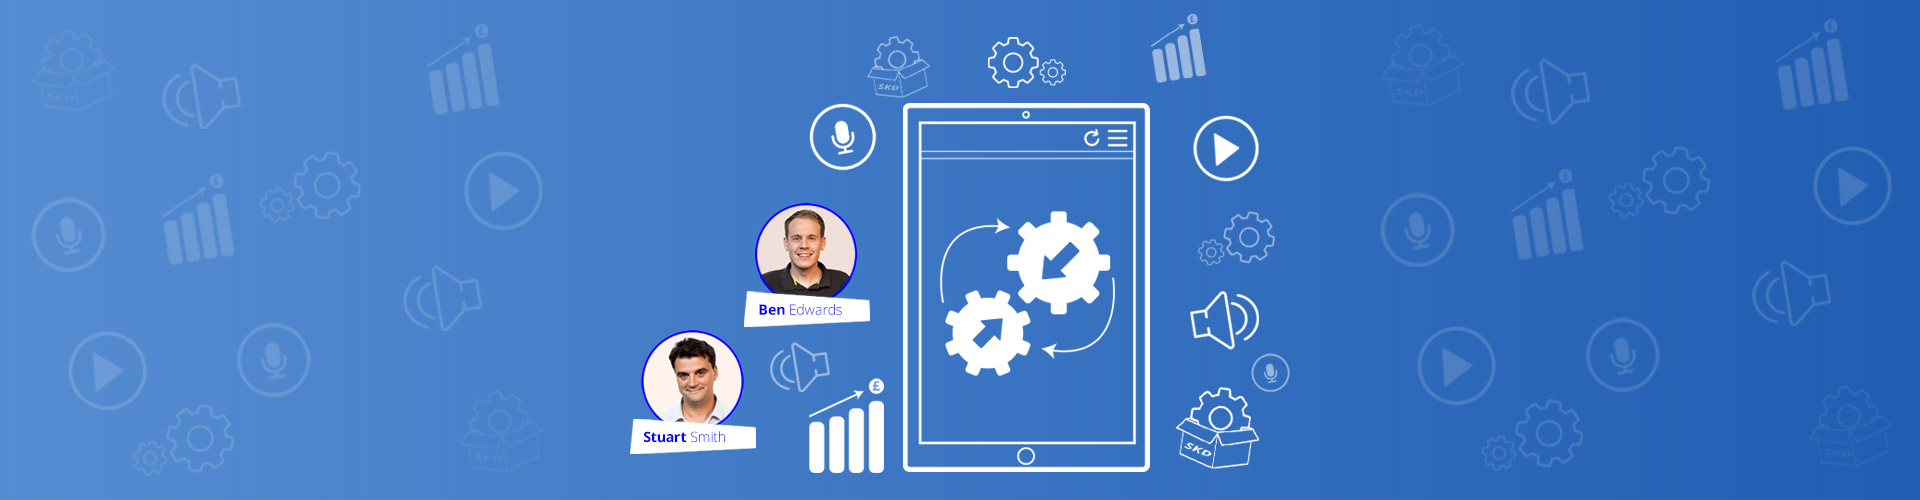 WEBINAR: 2 in 1 – The Strategy for App Success!